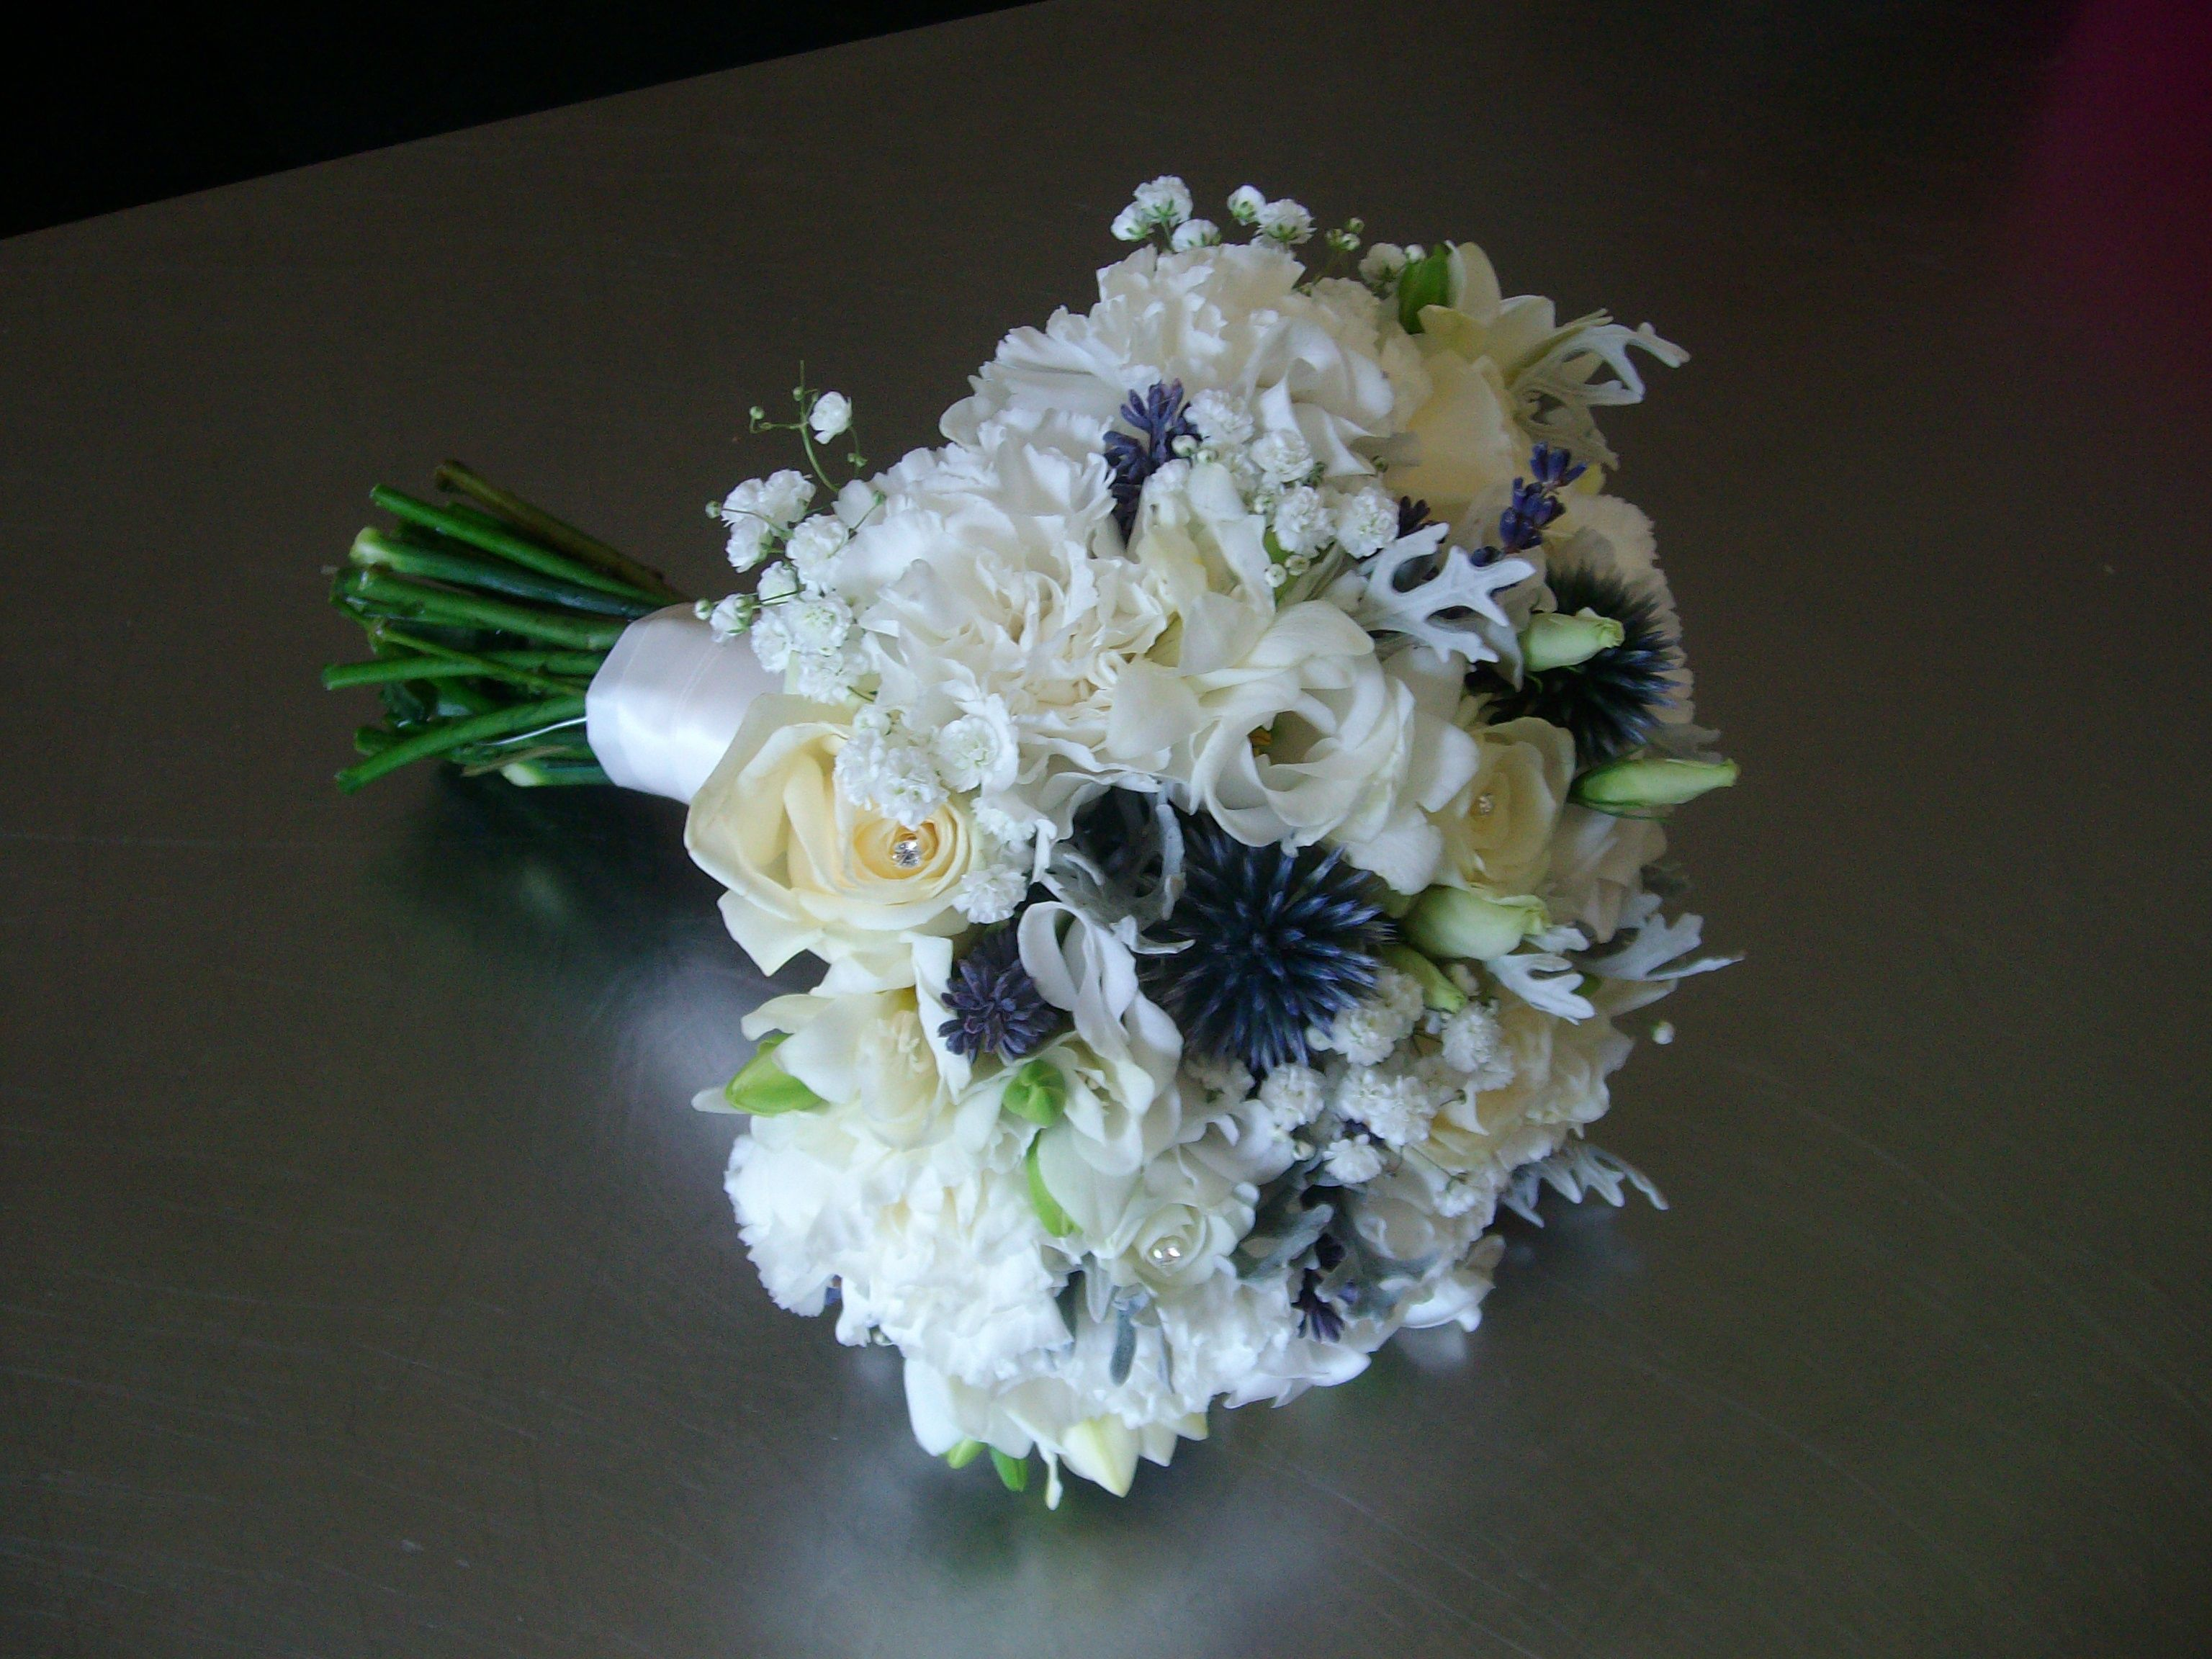 A Navy and Ivory fresh flower bridal bouquet by Celebration Moments